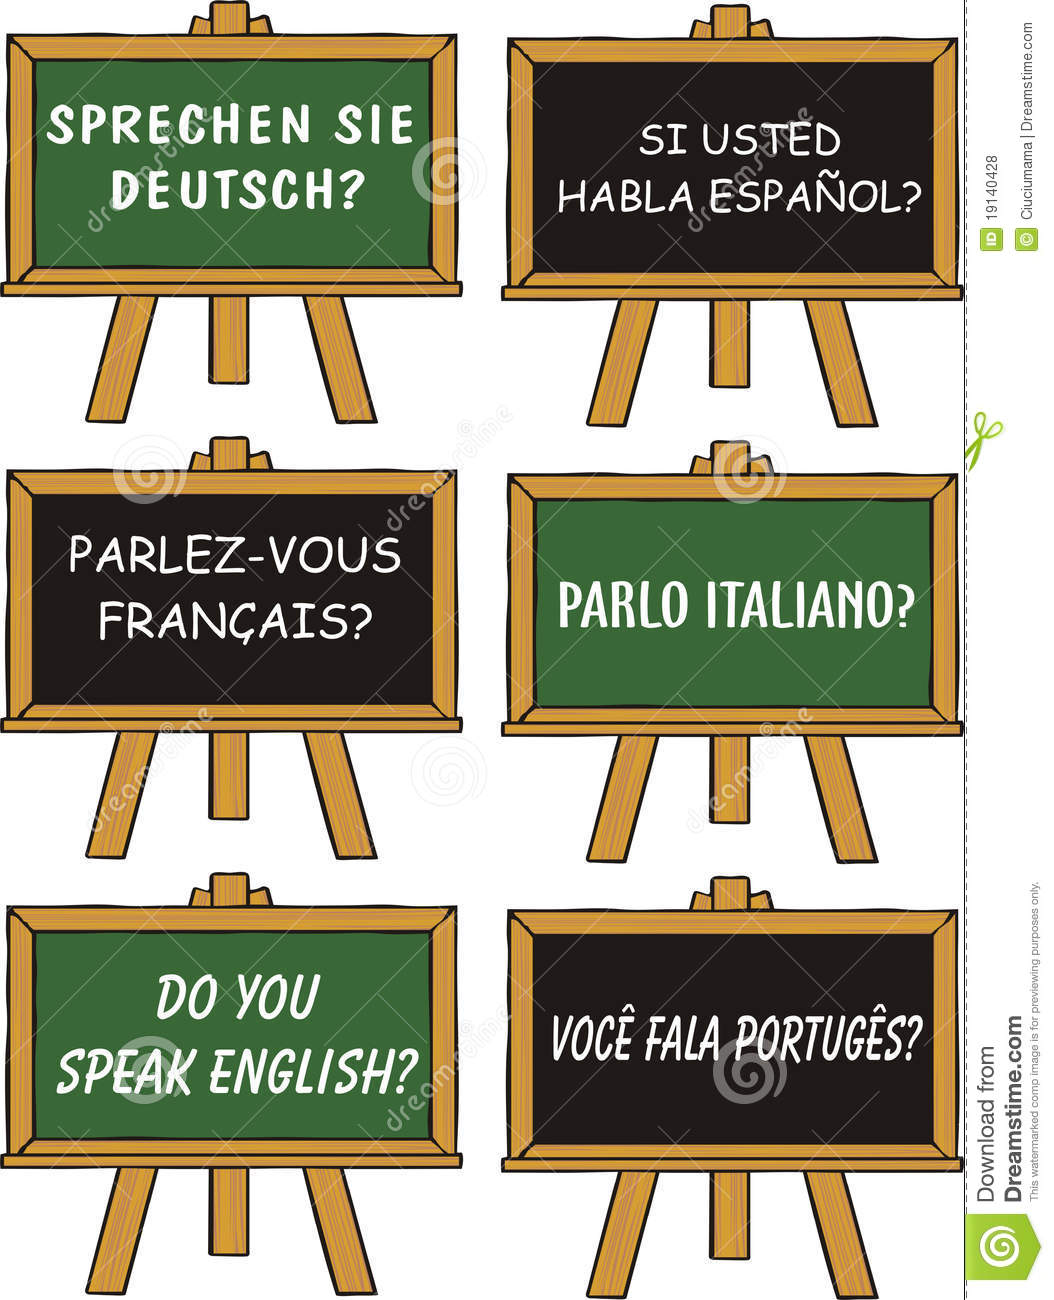 English In Italian: Foreign Language Education Royalty Free Stock Photos